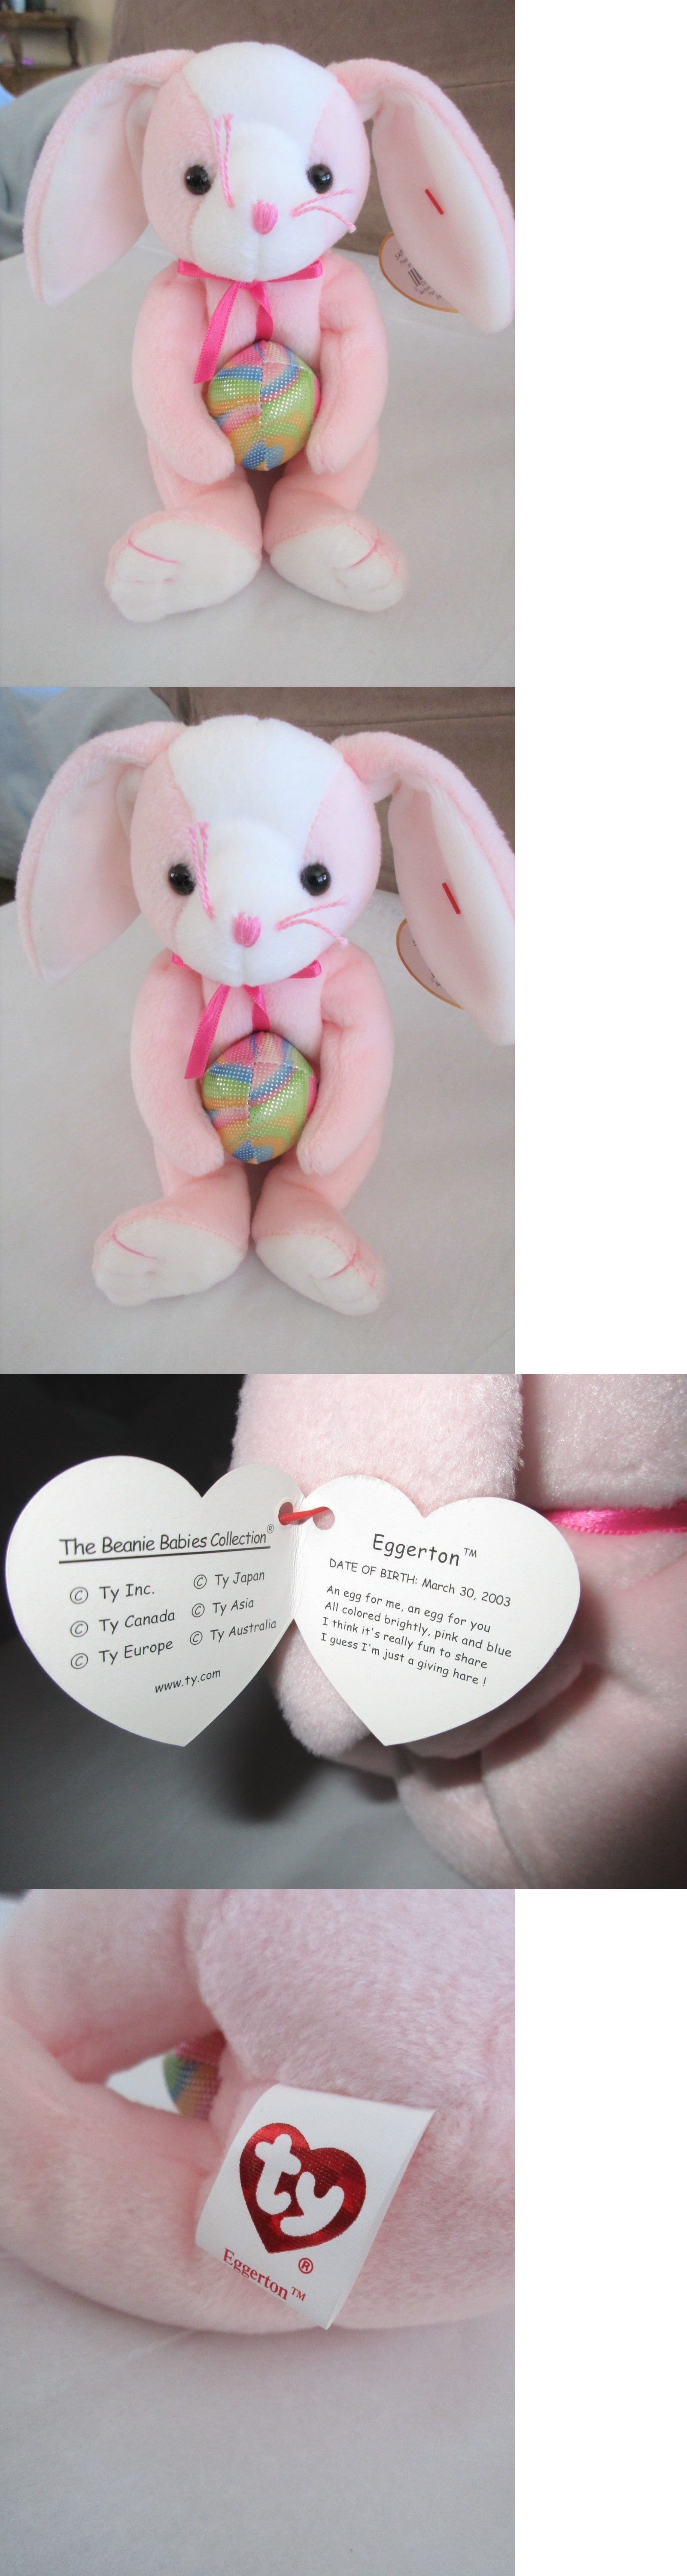 Ty Beanie Baby EGGERTON the Easter Bunny with Egg